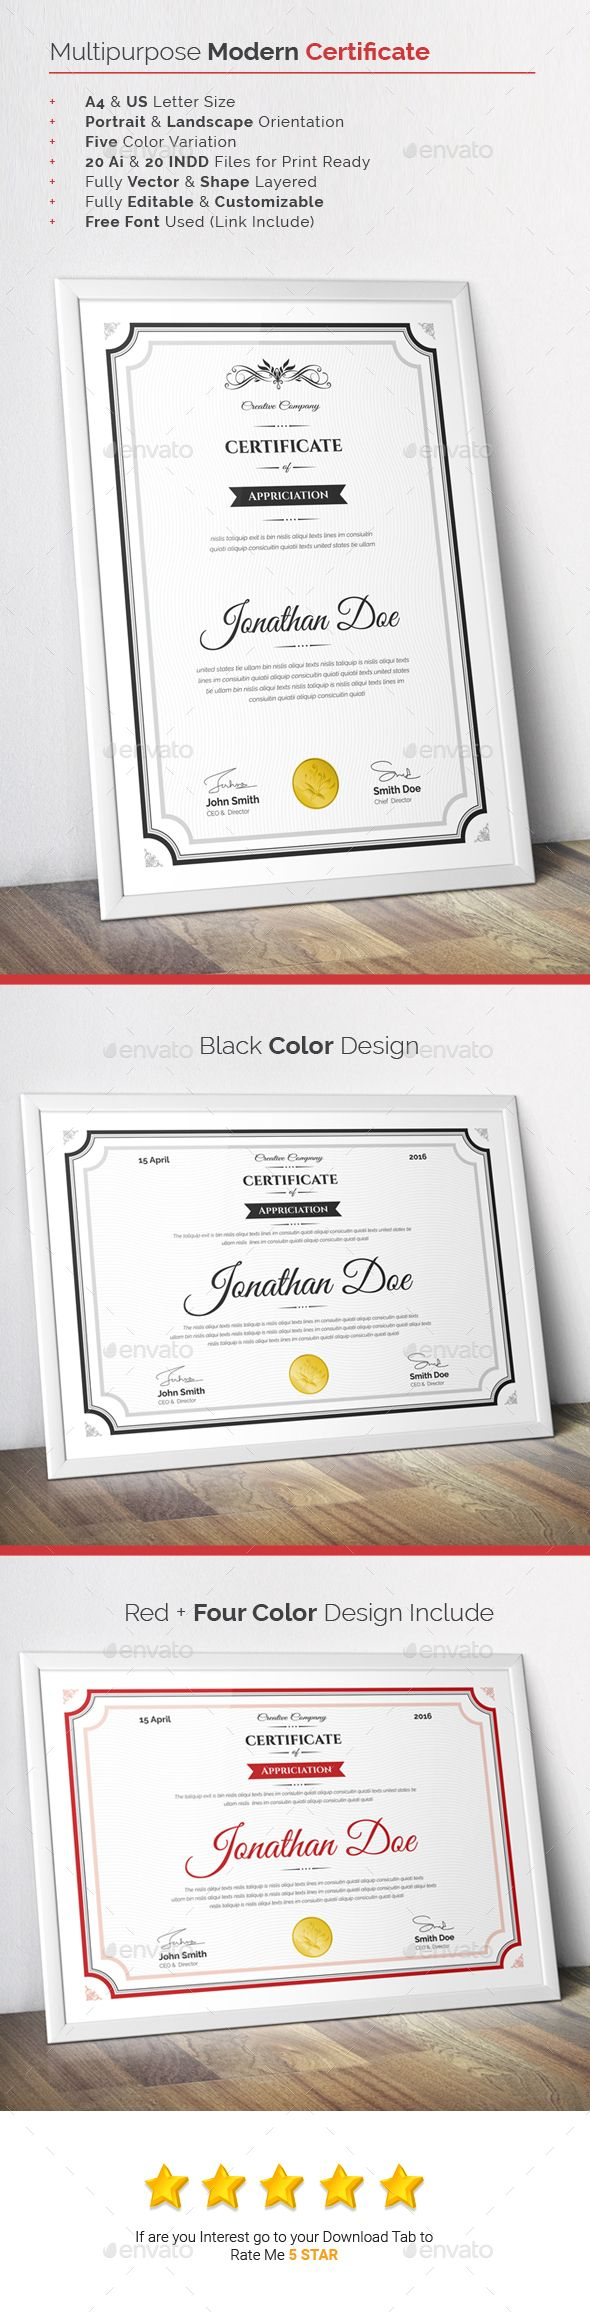 82 best this is certificate images on pinterest award certificates multipurpose modern certificate template by whitegraphic yelopaper